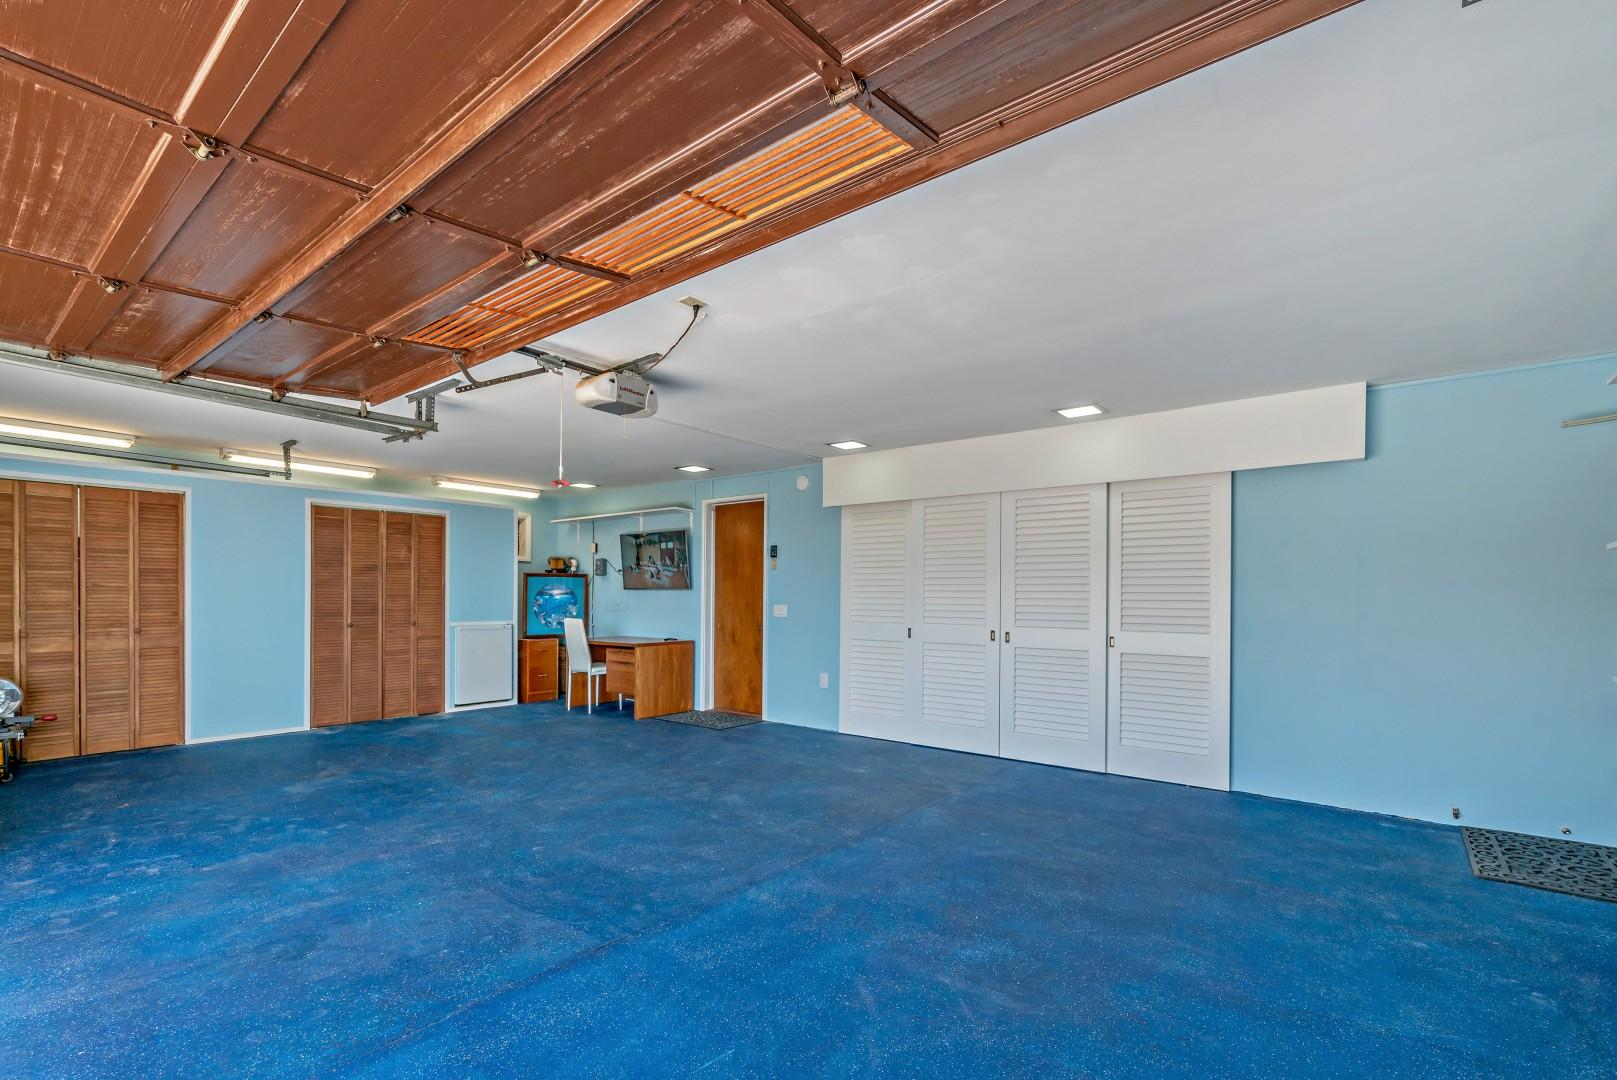 Plenty of Parking in this 3 car garage. With full size washer dryer and wash sink. Dedicated area for fitness and yoga with TV for streaming your motivational or training videos.